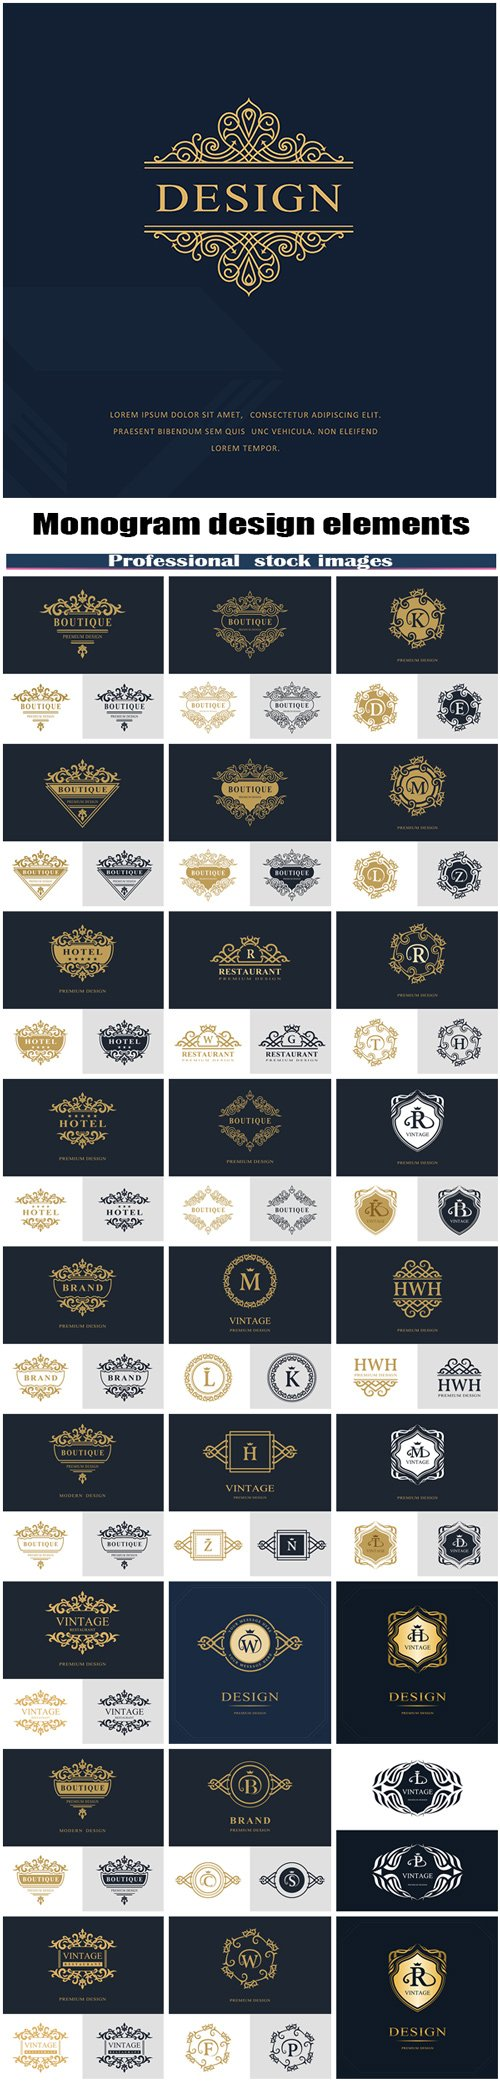 Monogram design elements set